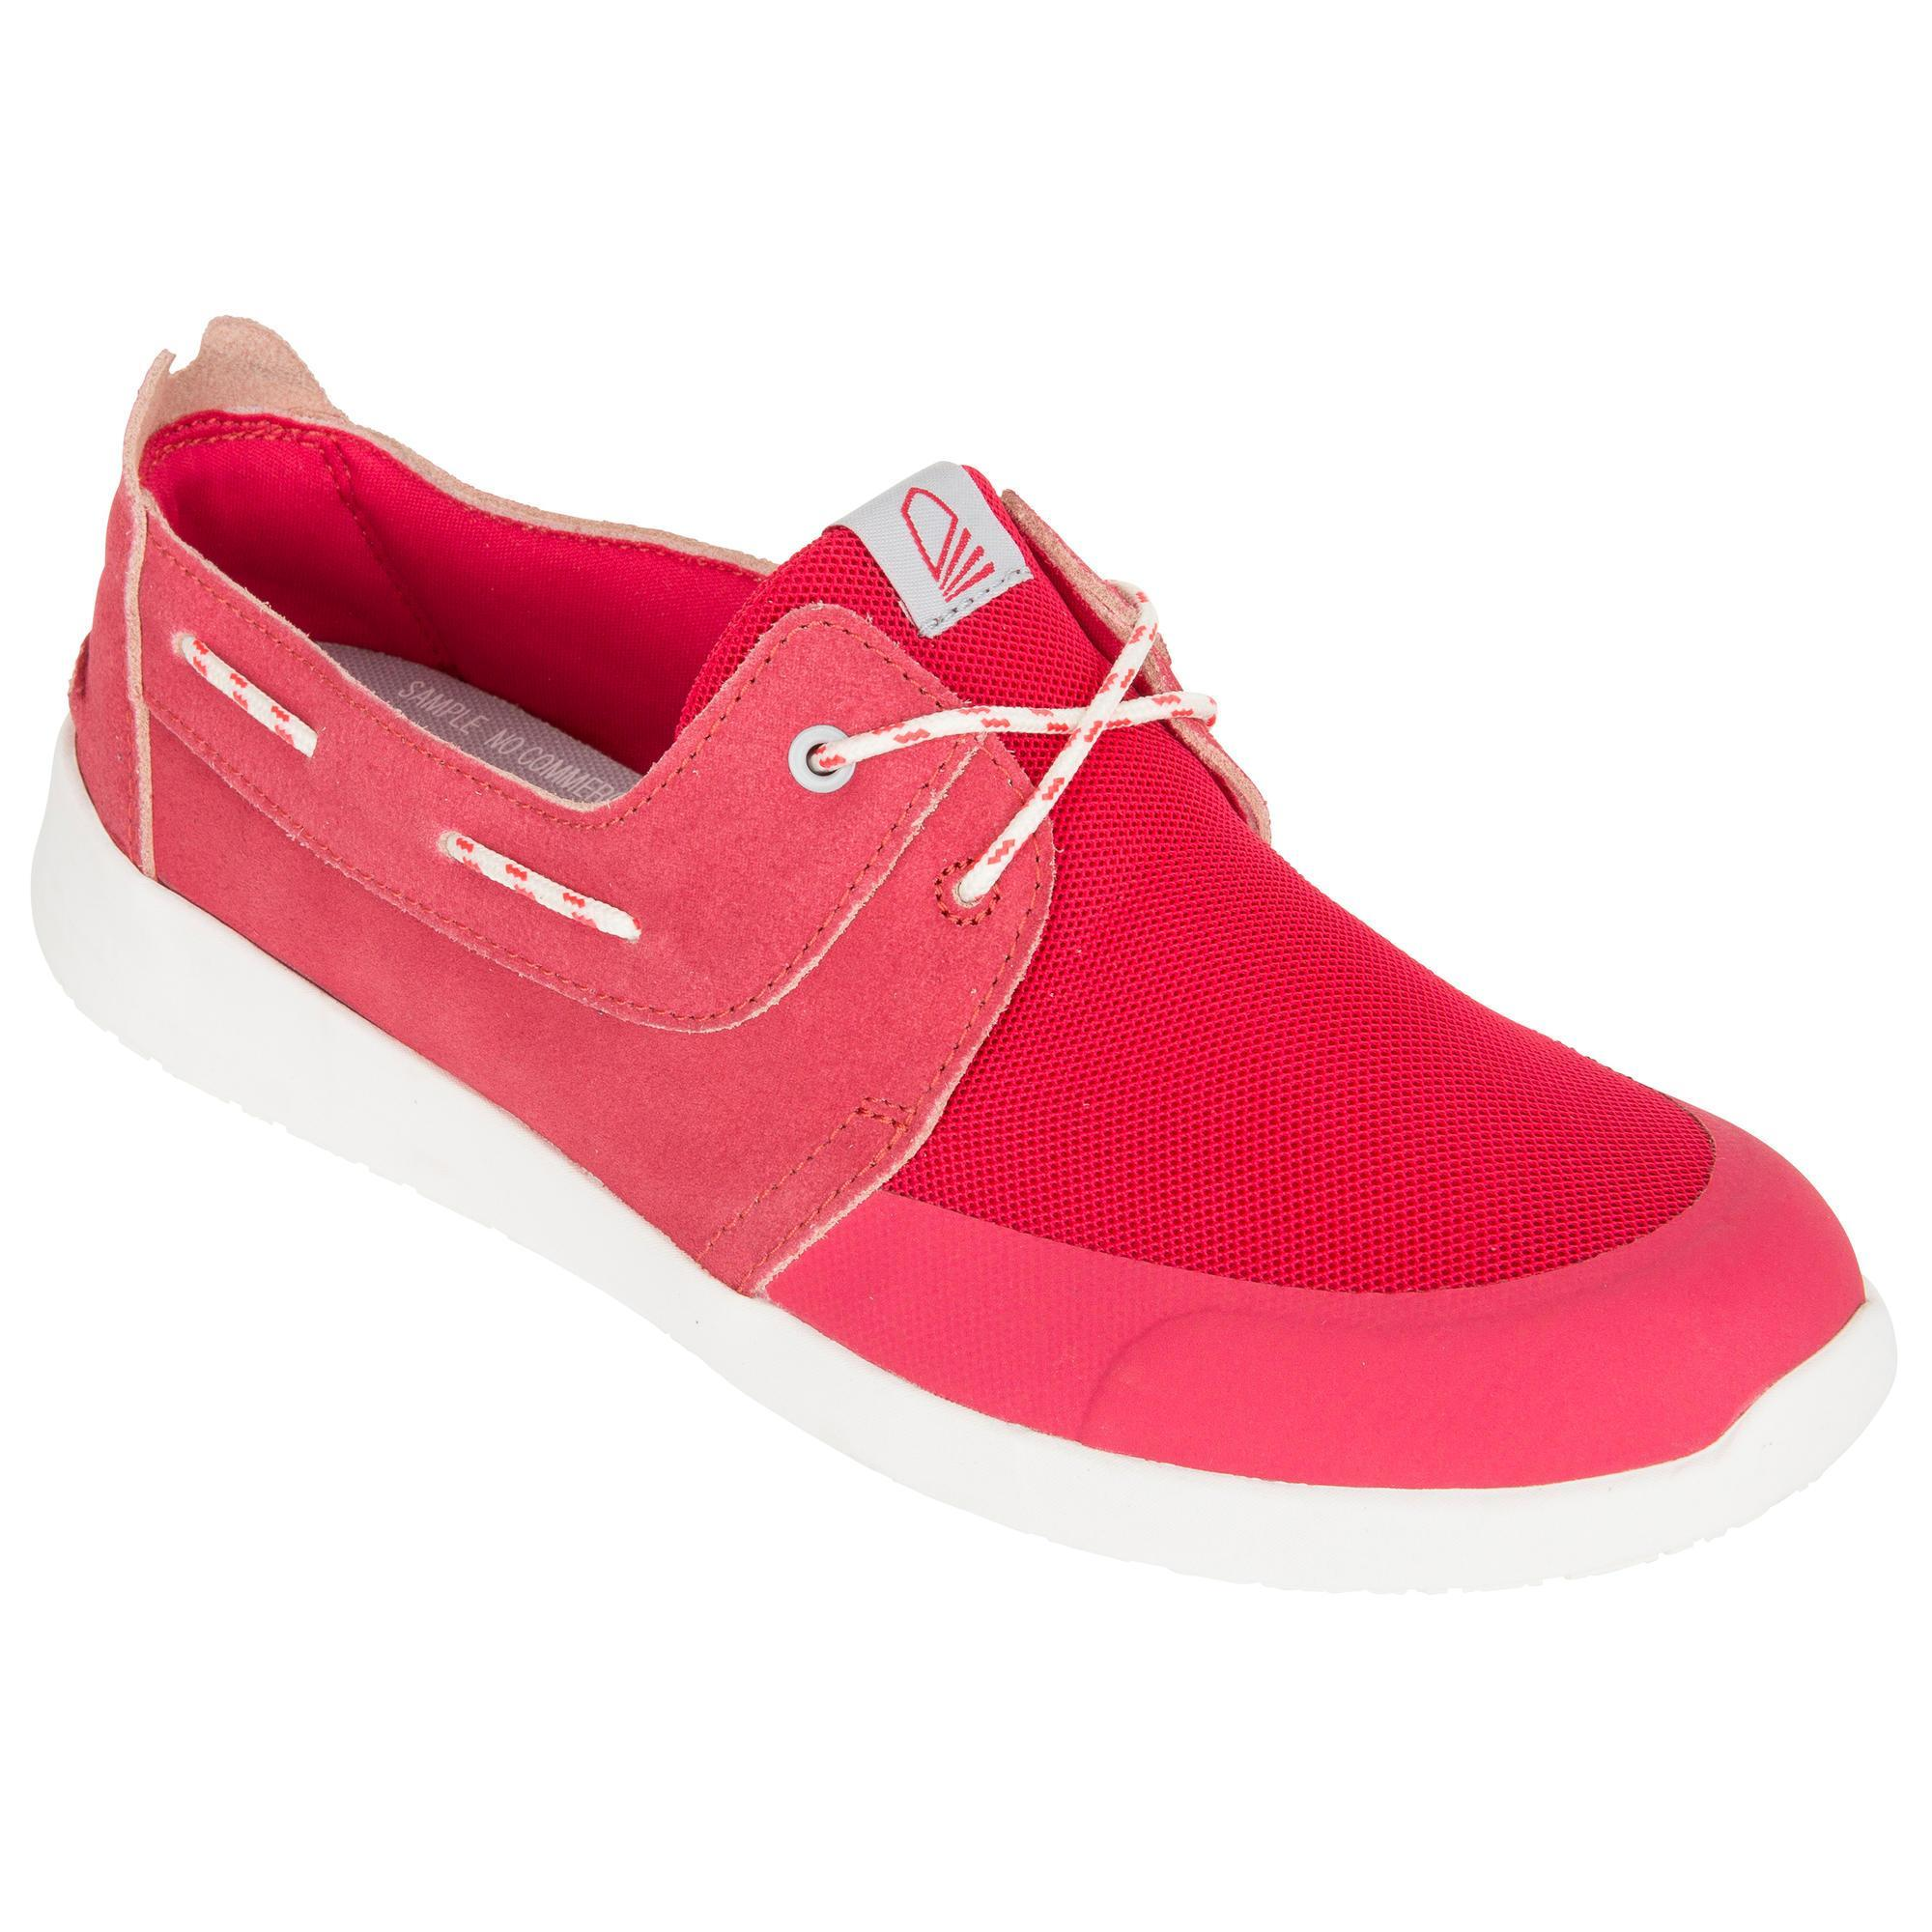 Chaussures bateau femme Cruise 100 rose - Tribord